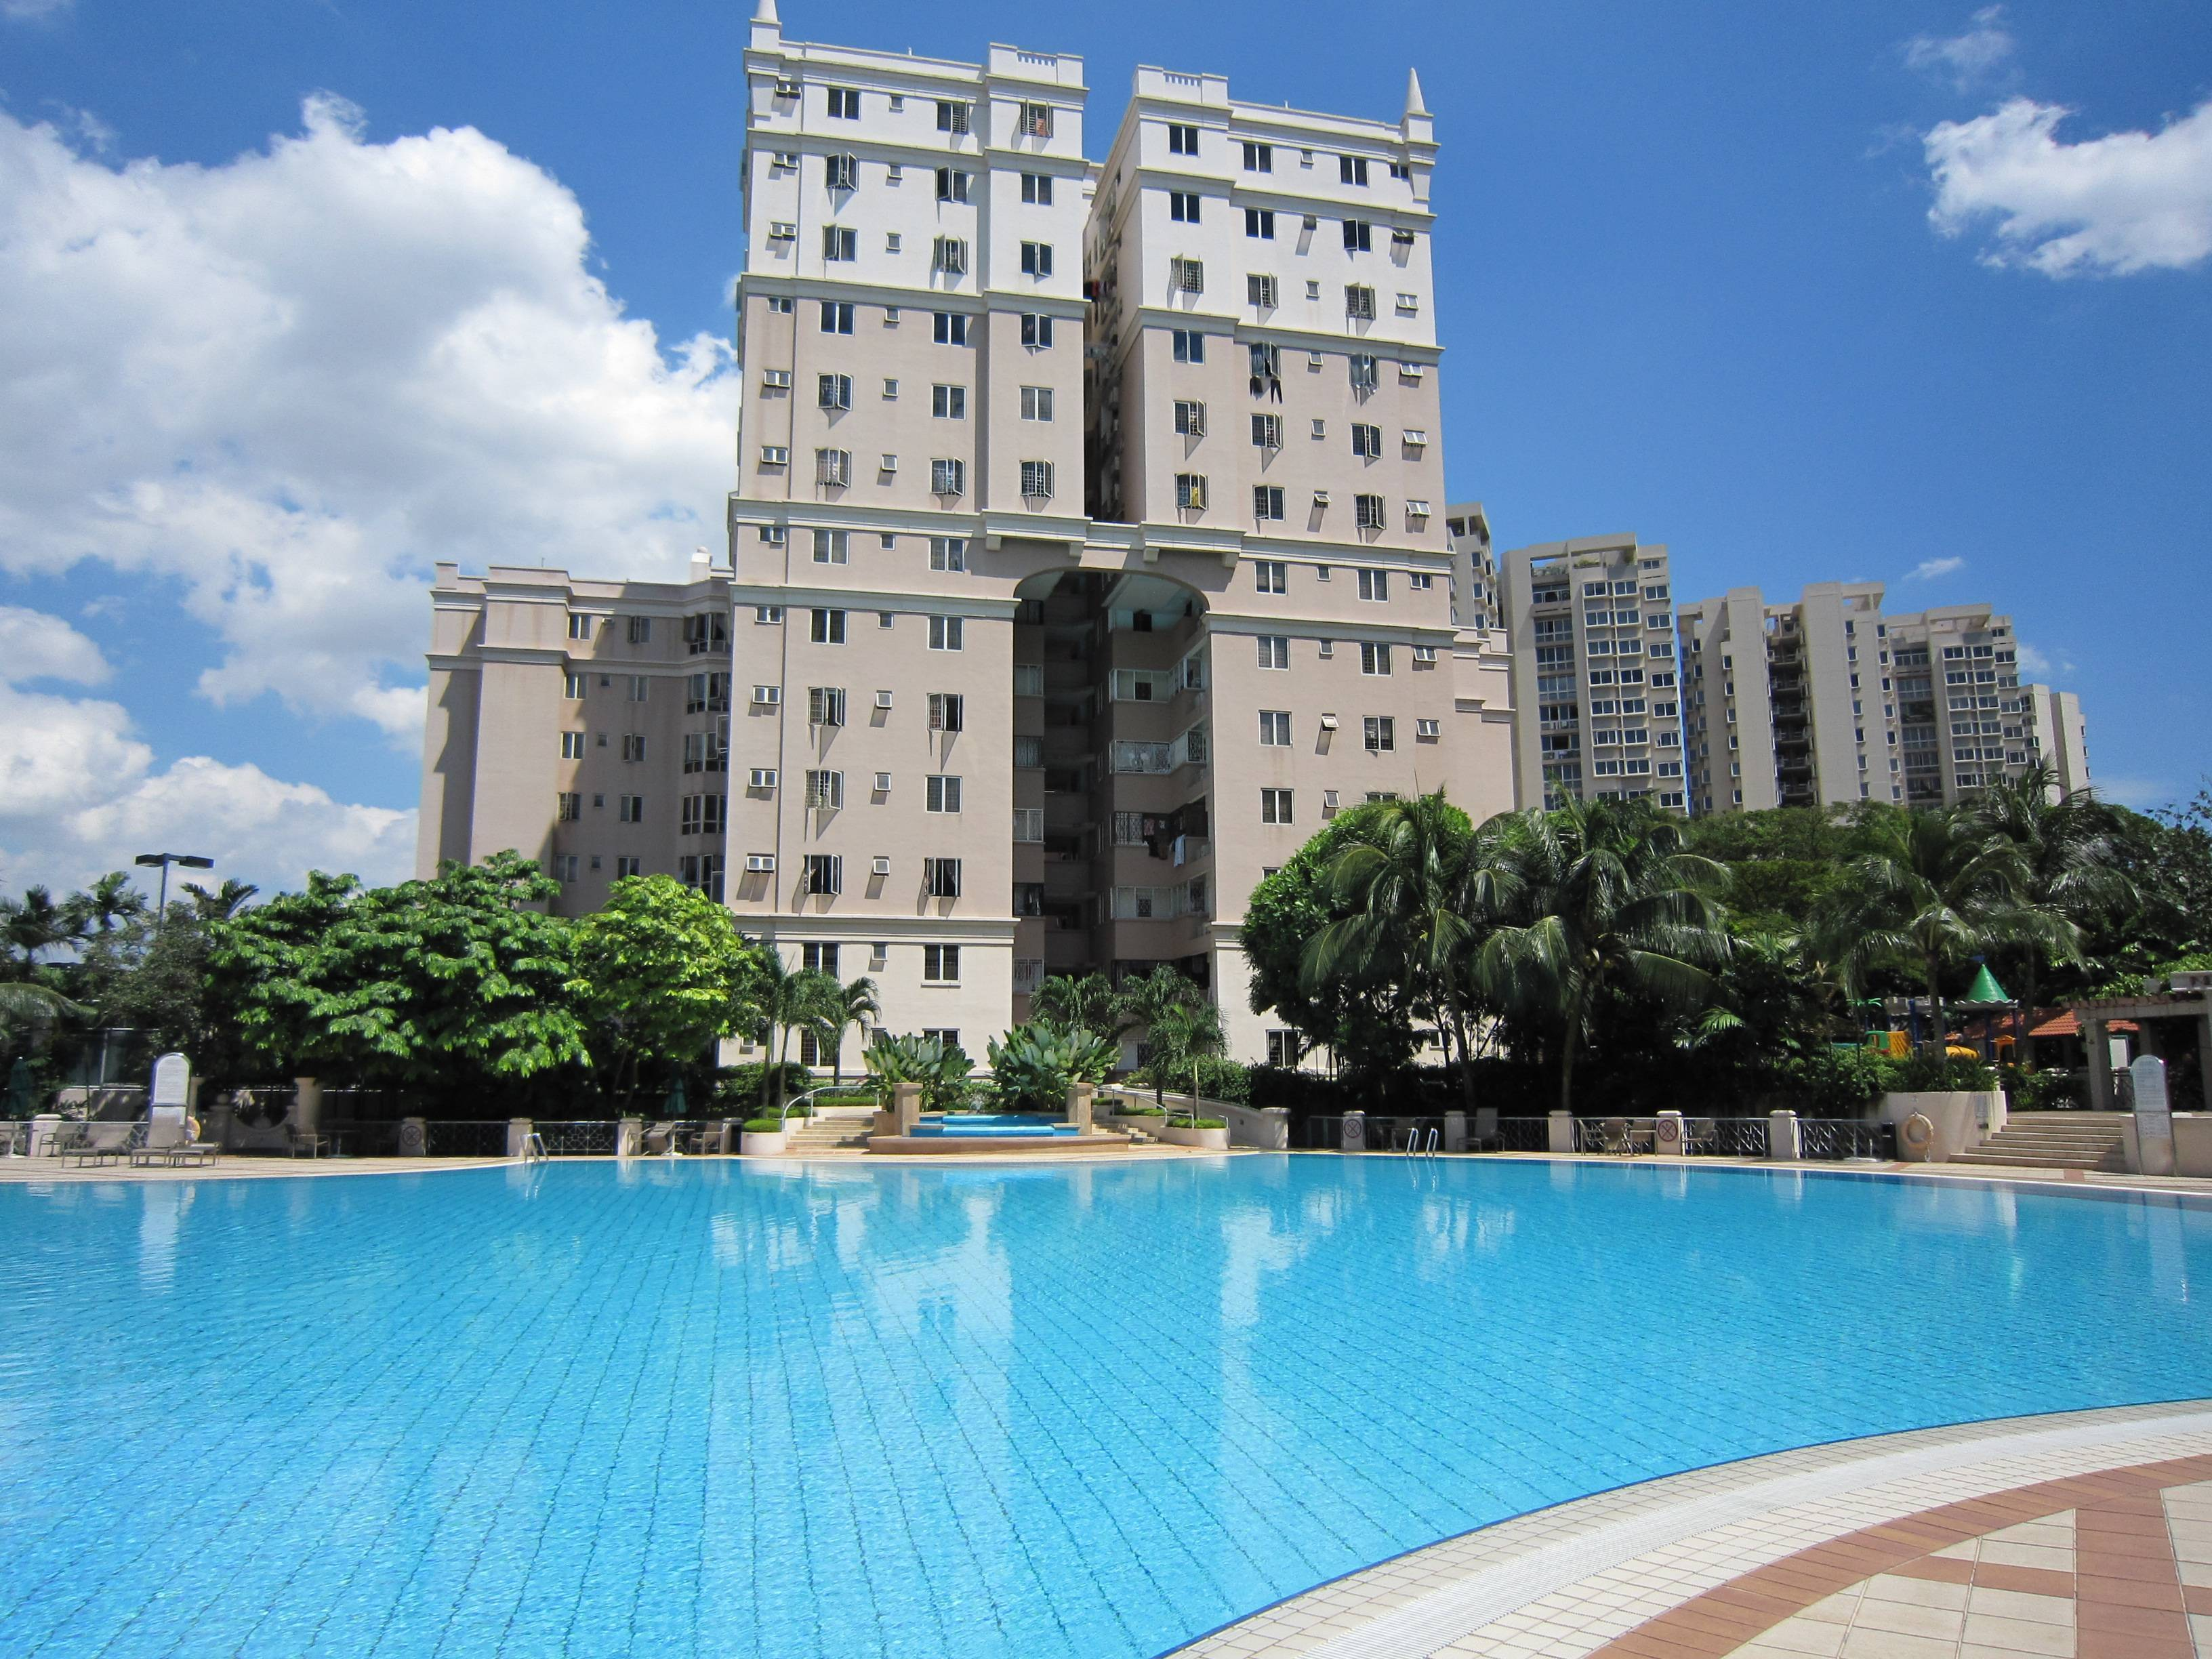 Condo For Rent Ang Mo Kio Ang Mo Kio Singapore Castle Green Condo 4 Bedrooms Fully Furnished